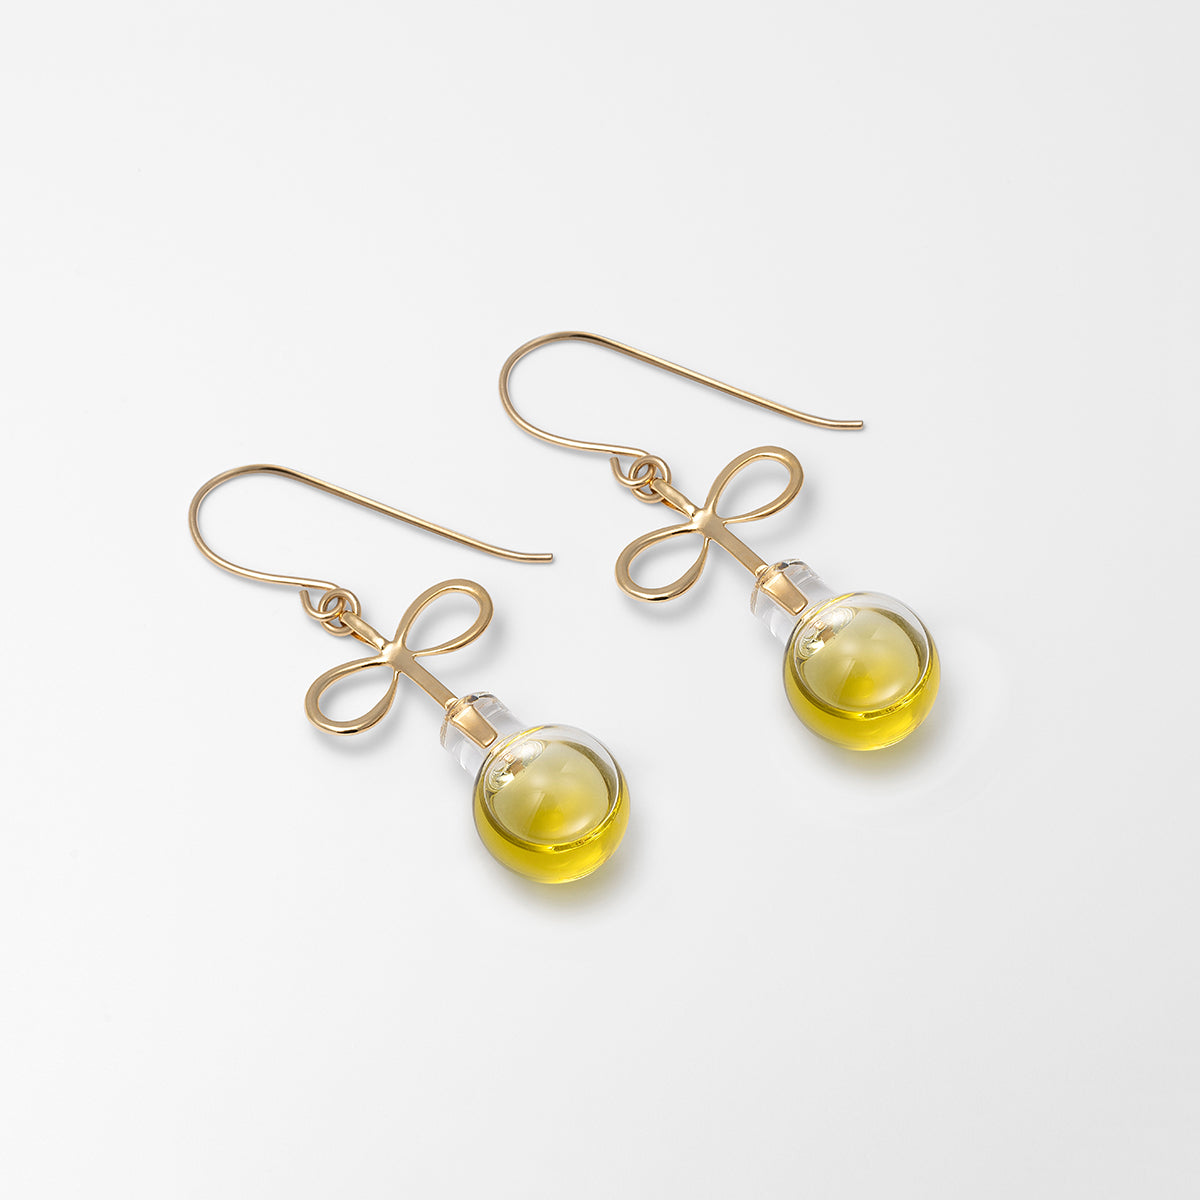 Infinity Oil Earrings